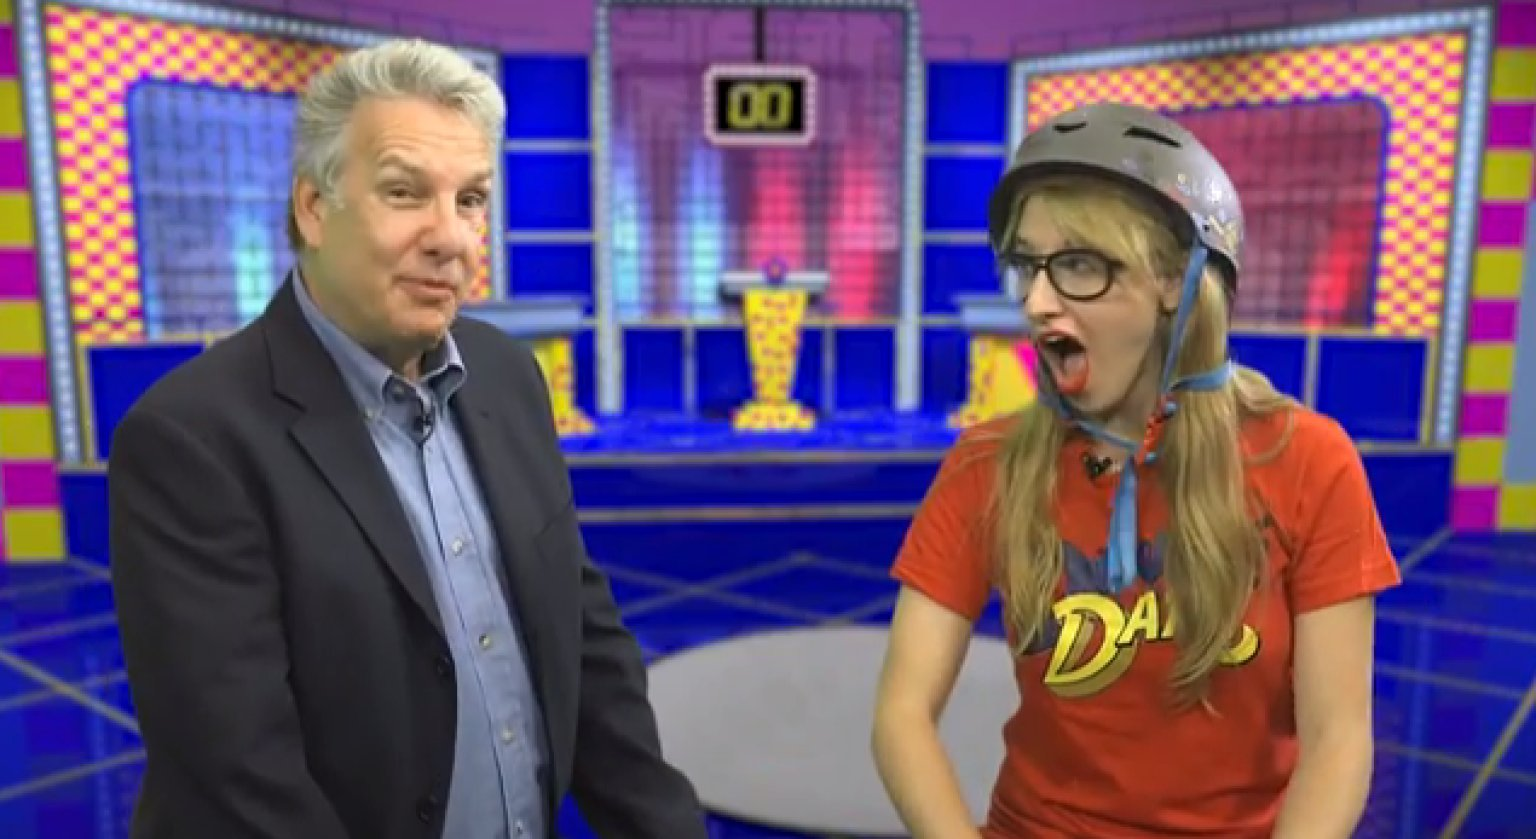 GAK Facebook: Nickelodeon's Marc Summers Admits 'Gak' Meant Heroin